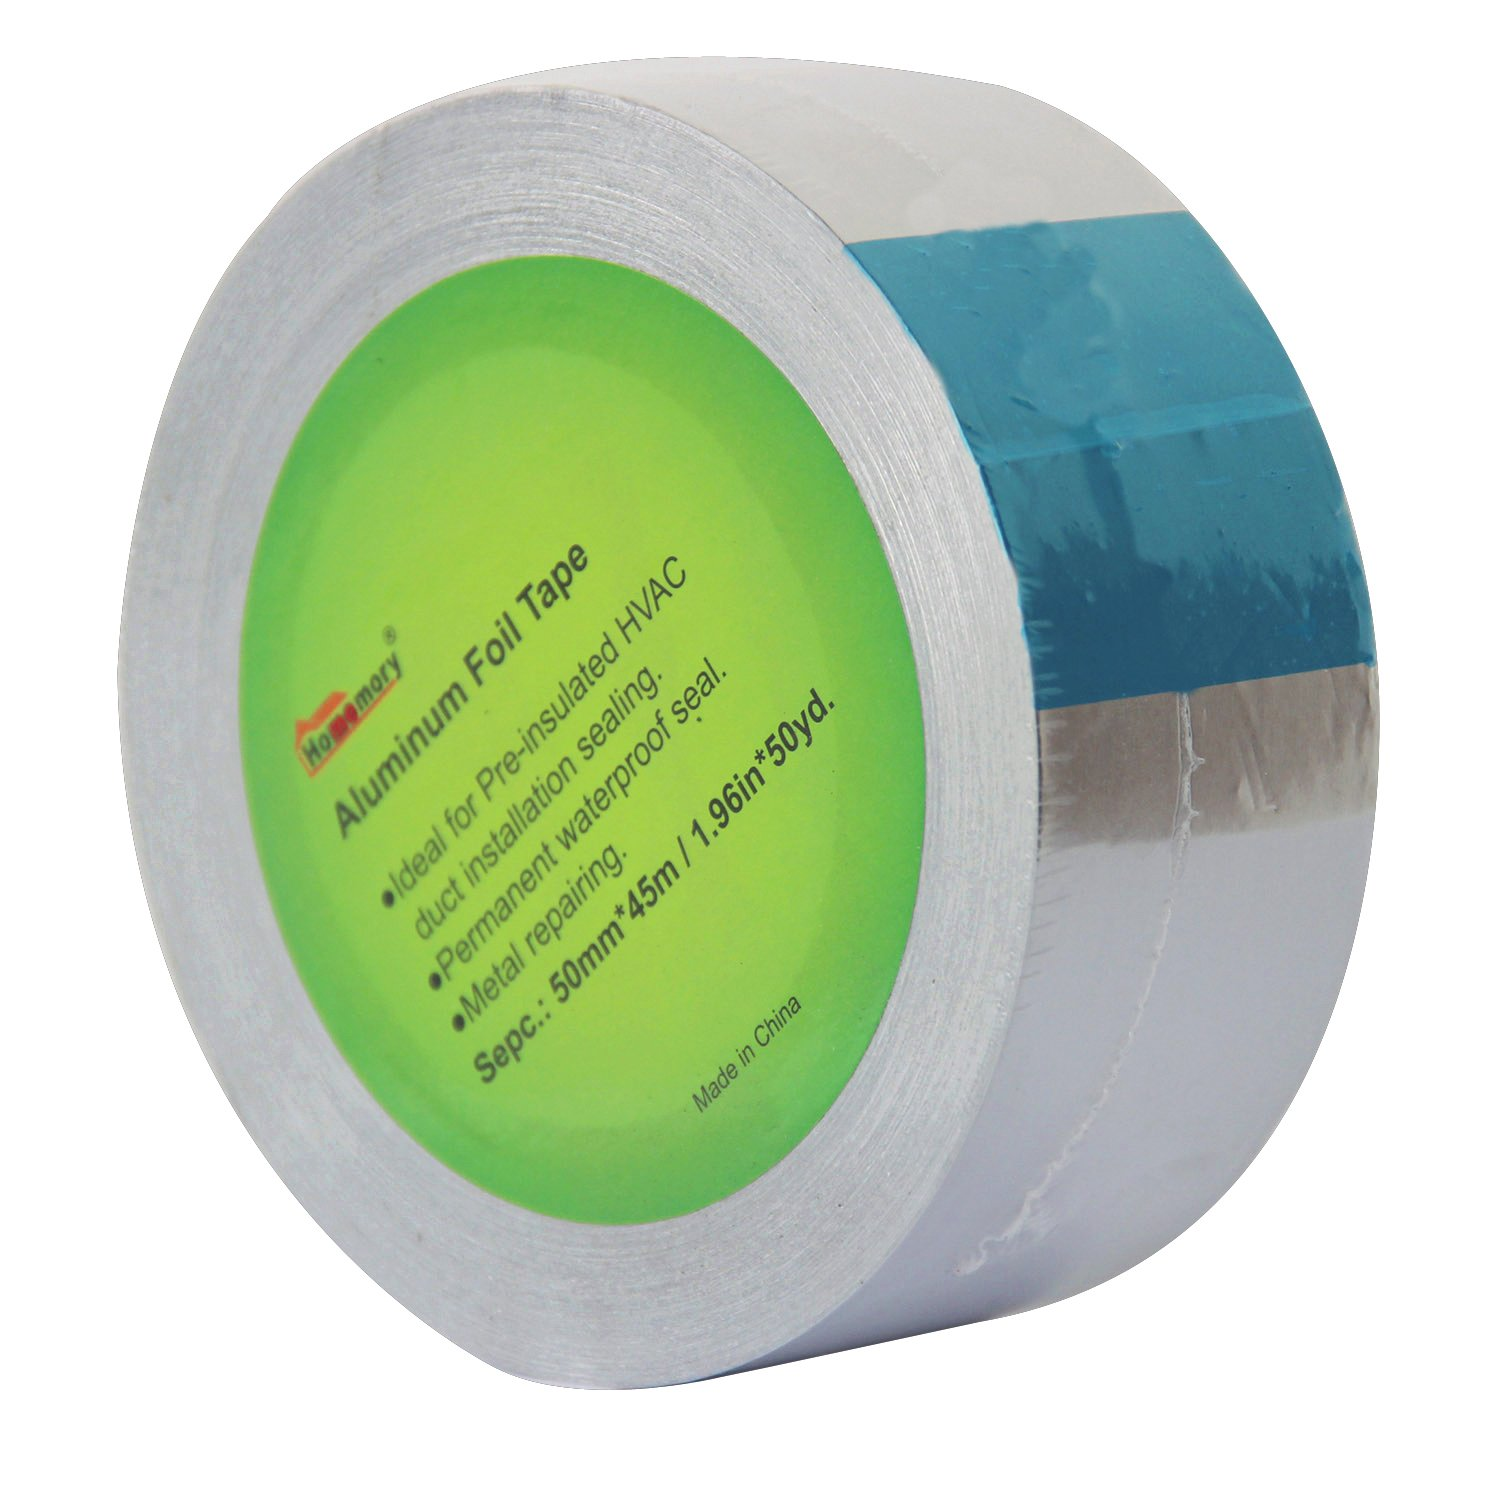 Homemory Aluminum Tape/Aluminum Foil Tape - 2 inch x 150 feet (3.2 mil) - Good for HVAC, Ducts, Insulation and More